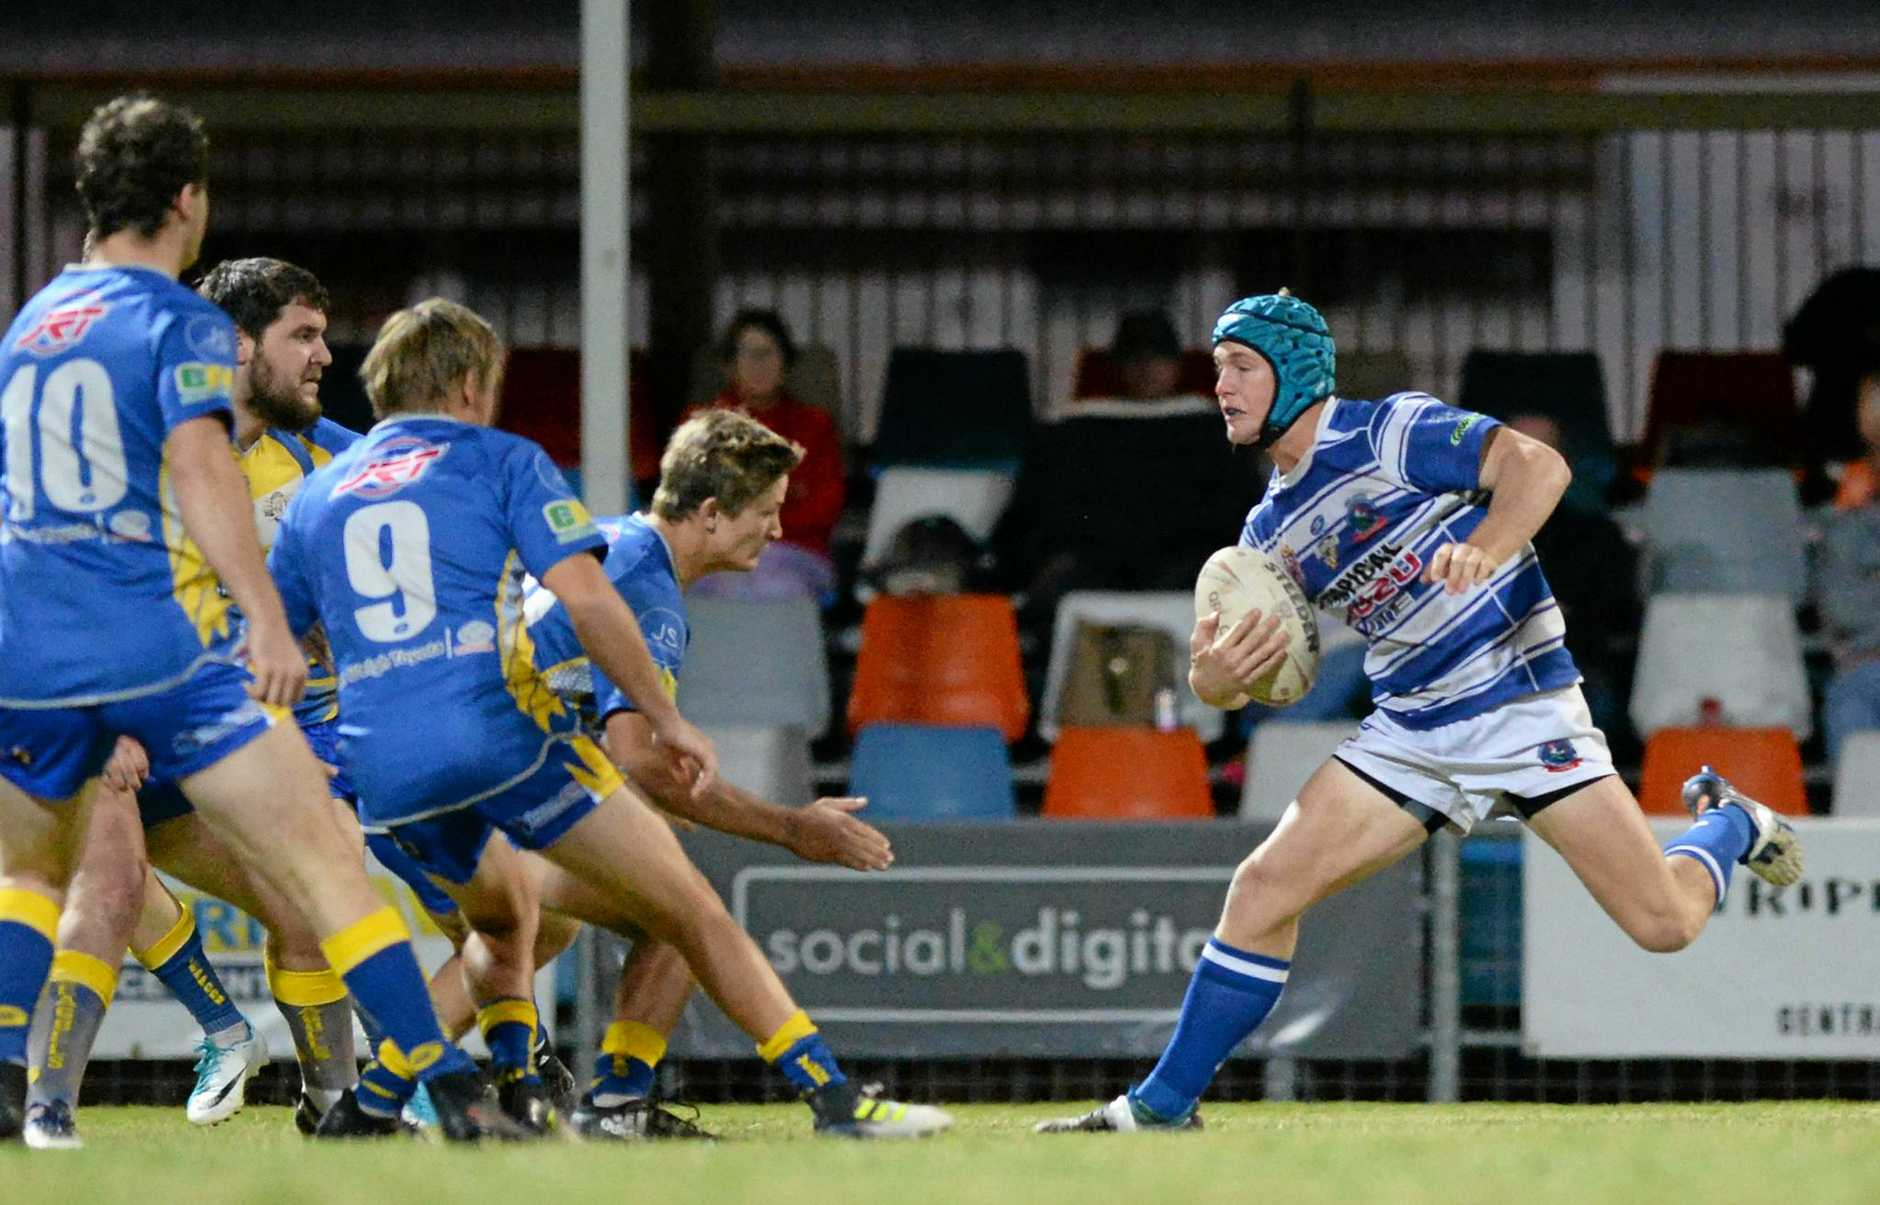 FULL STRIDE: Rockhampton Brothers player Lachlan Norris charges into Yeppoon's defensive line in Saturday night's preliminary final.